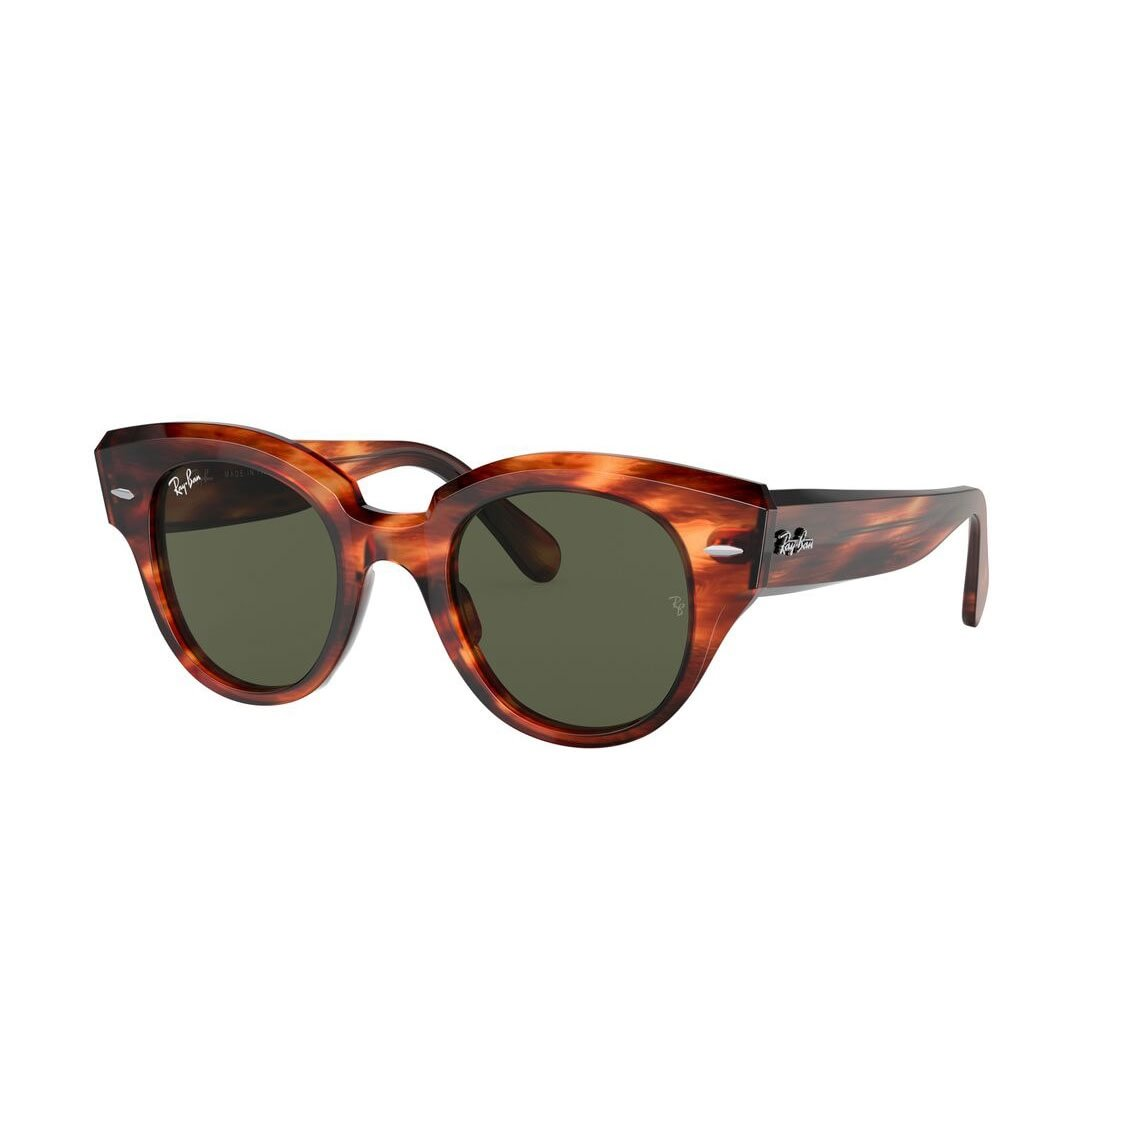 Ray-Ban Roundabout RB2192 954/31 4722